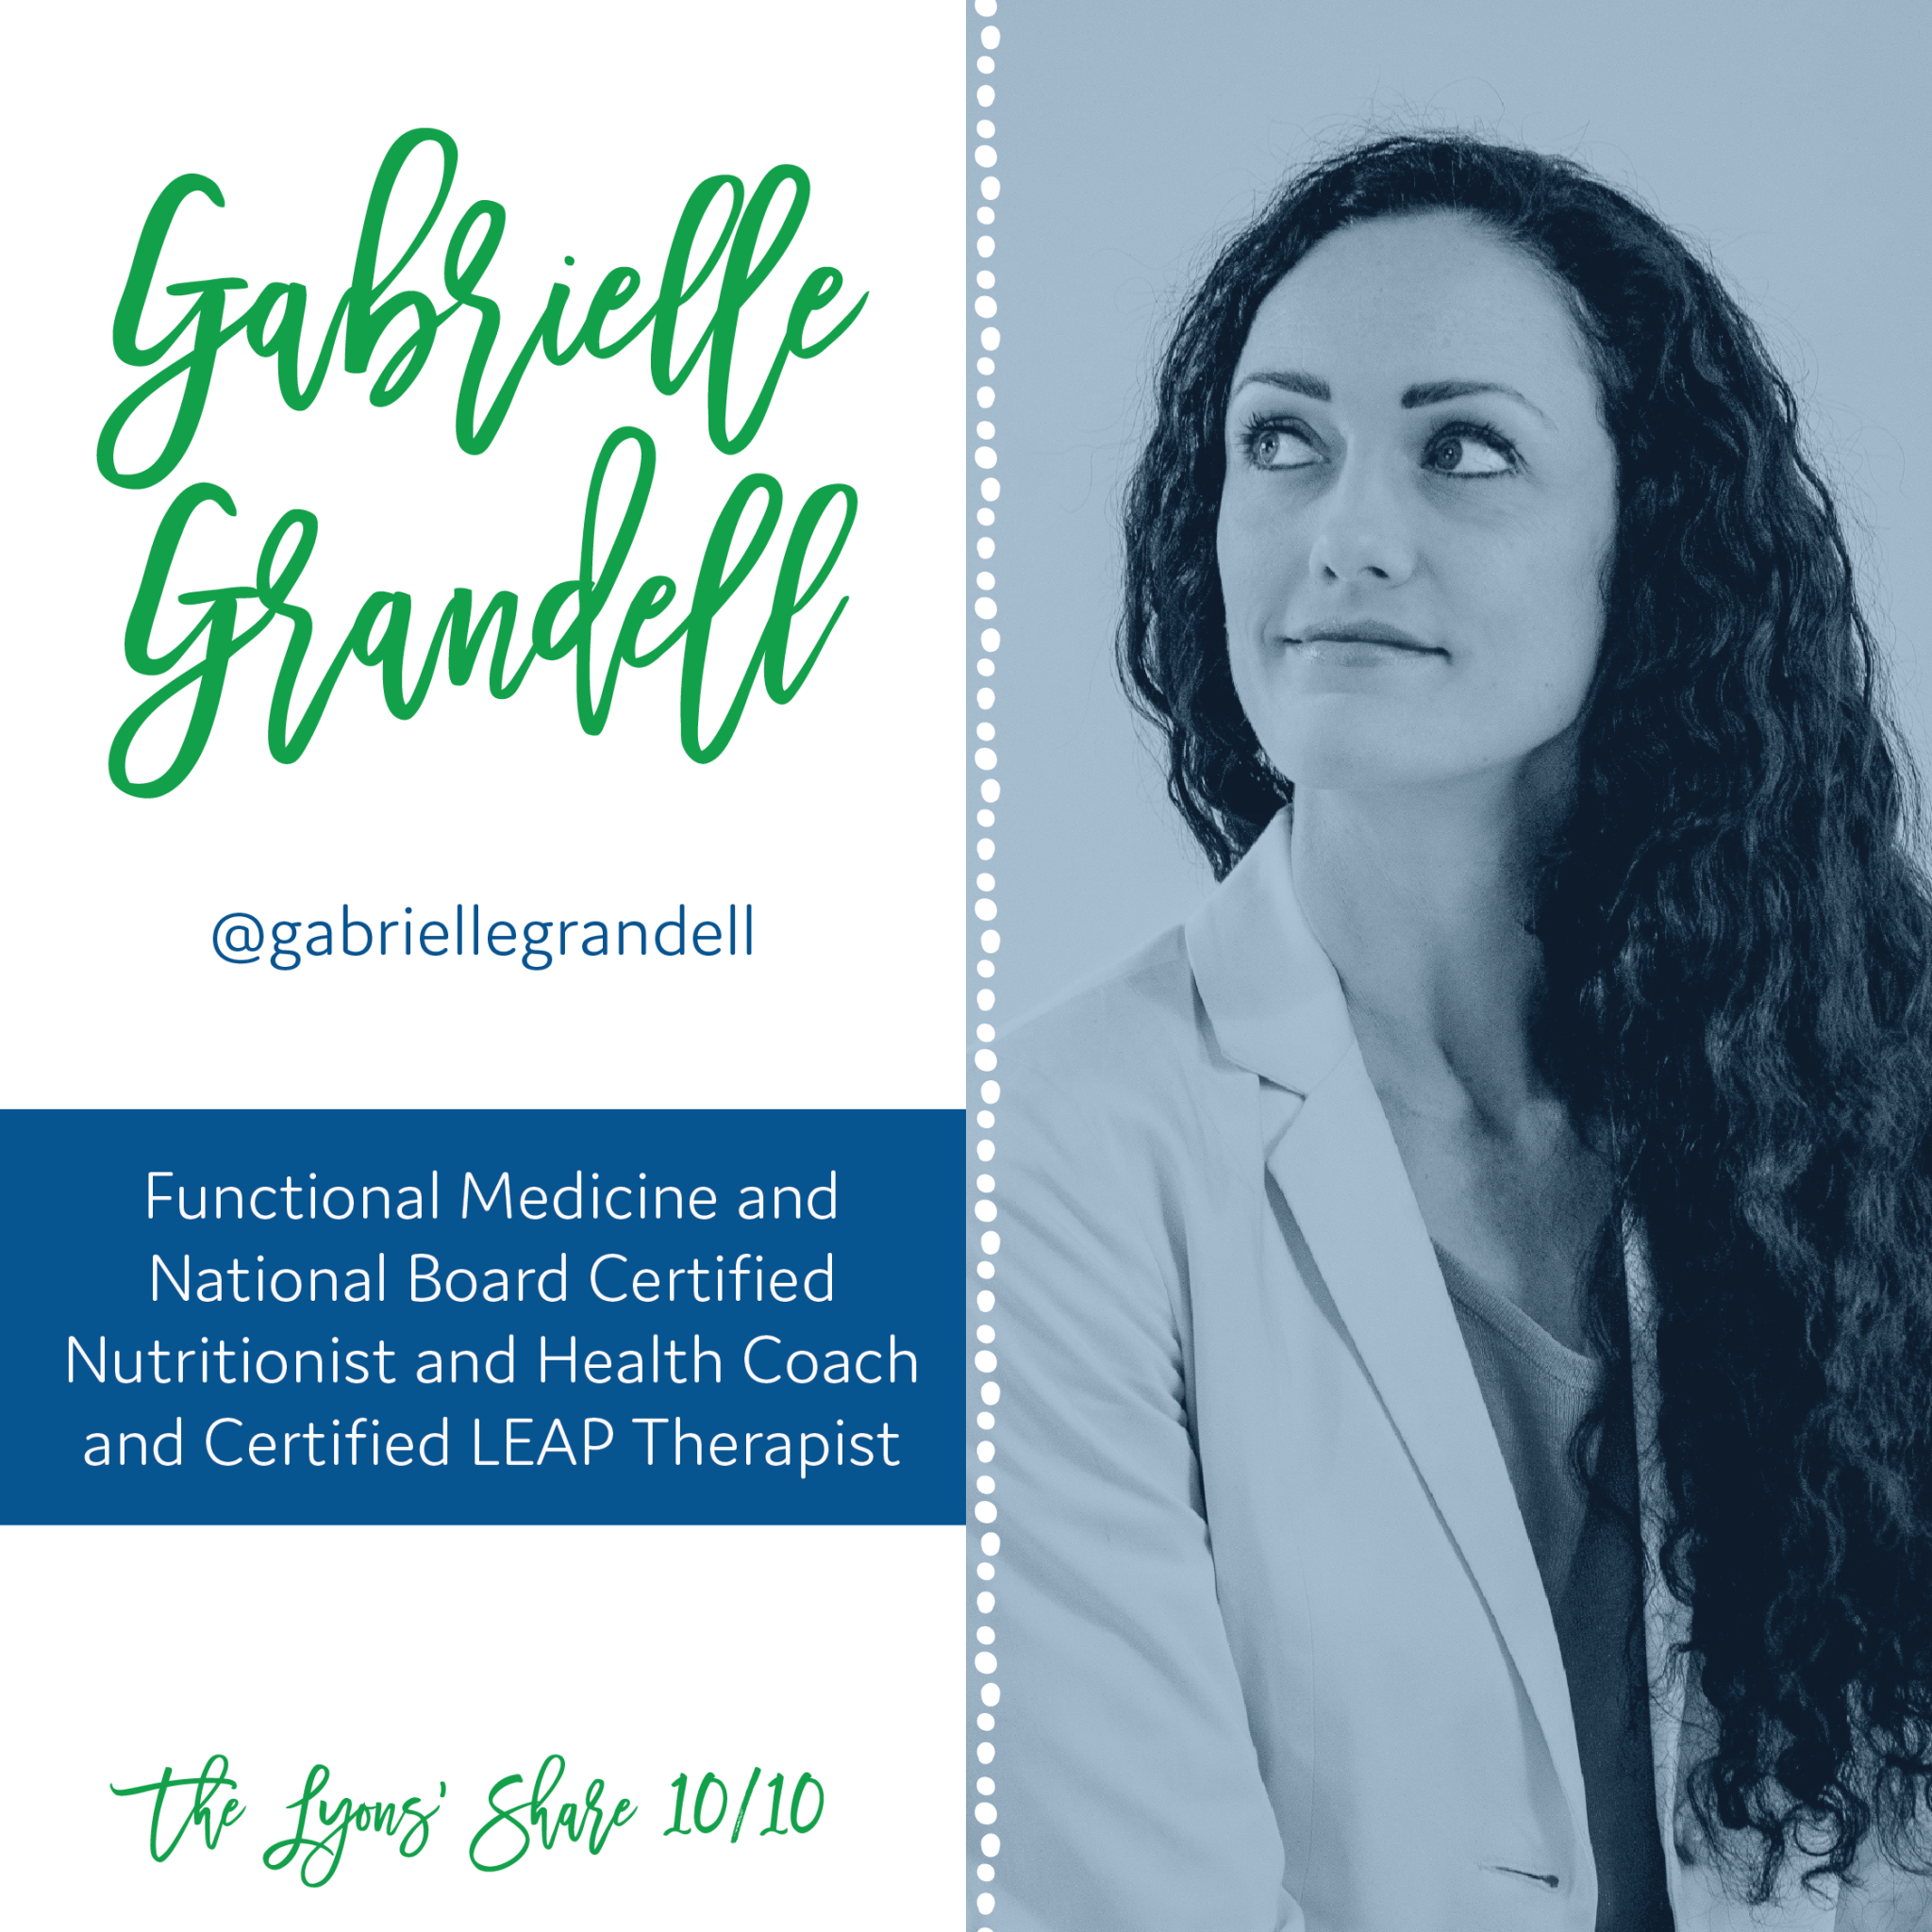 This Week's 10/10: Gabrielle Grandell, Nutritionist and Health Coach!